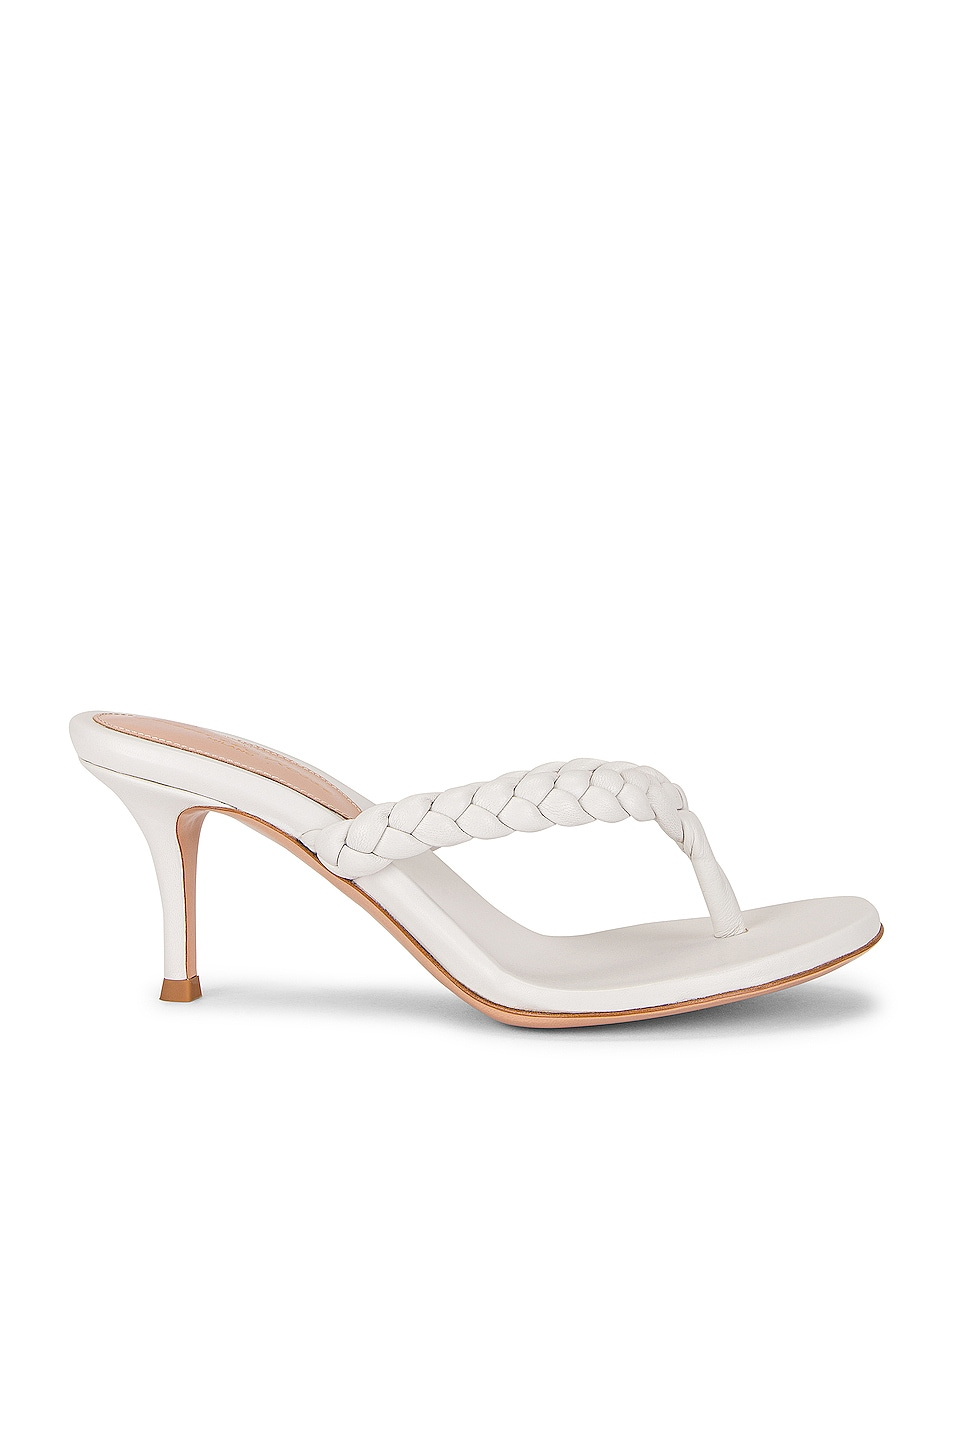 Image 1 of Gianvito Rossi Braid Thong Sandals in White